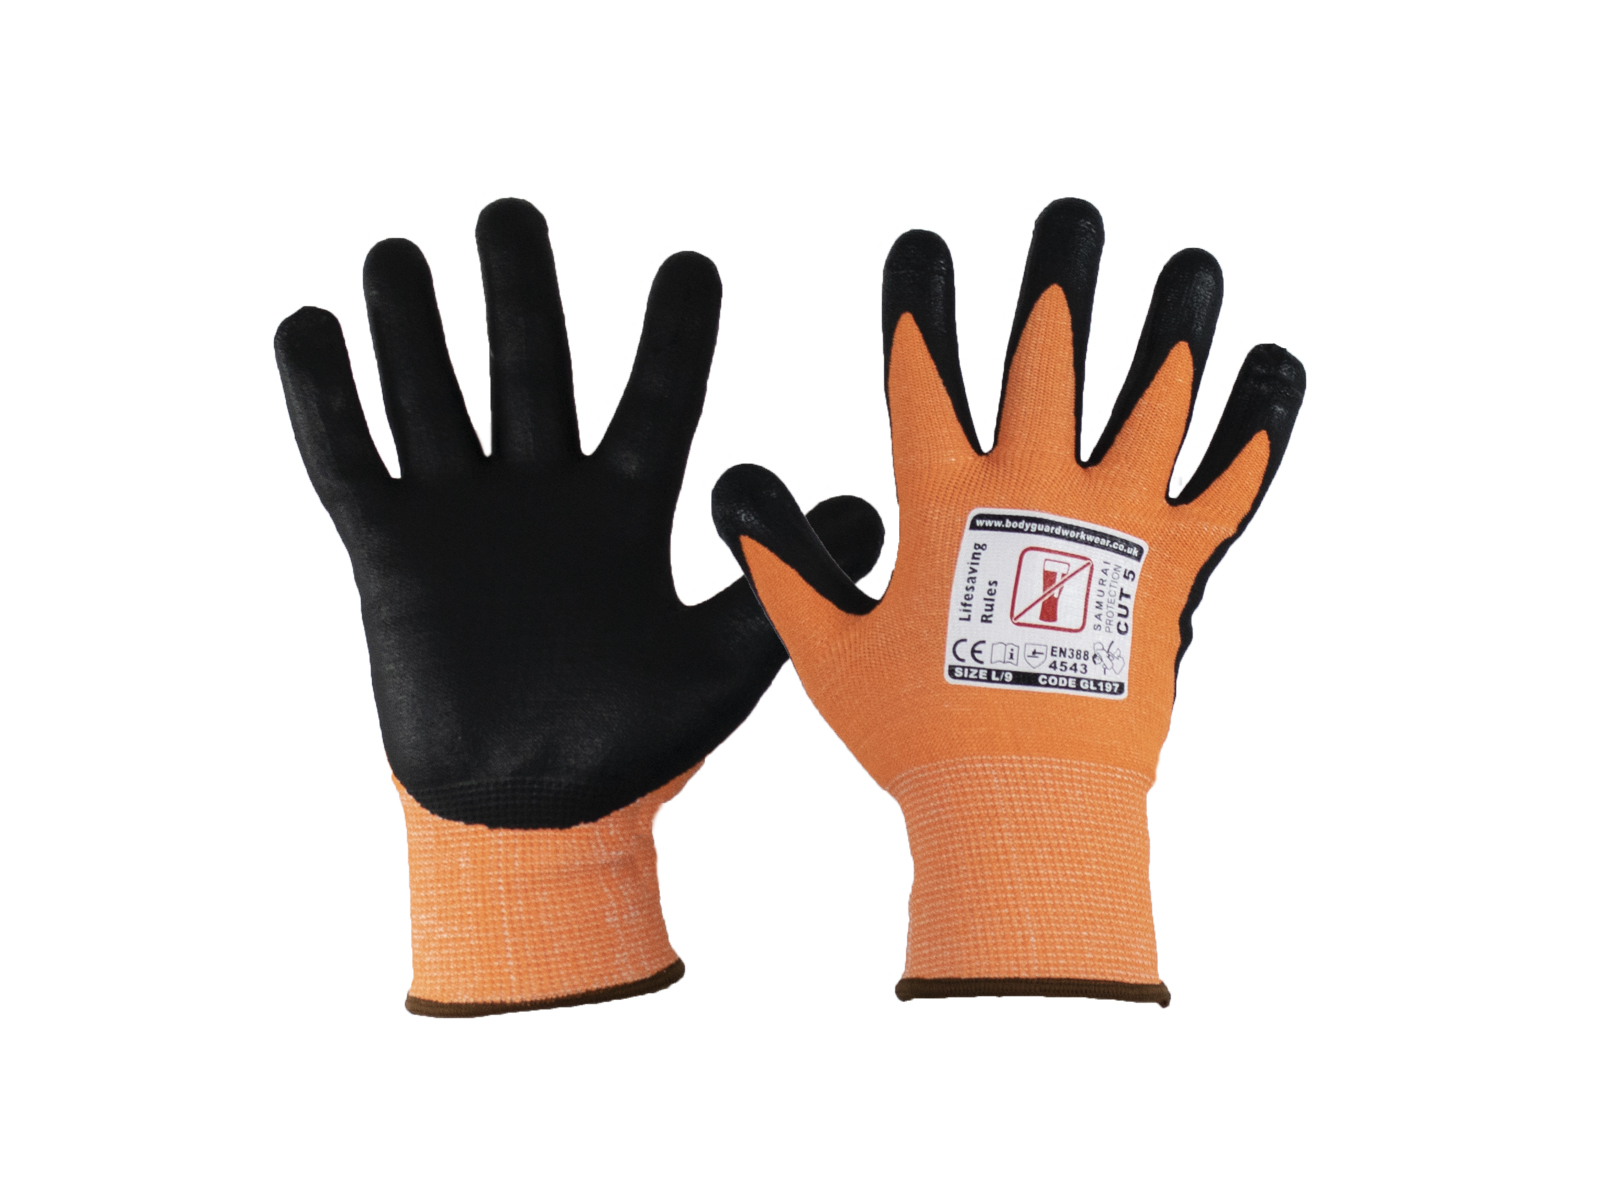 Samurai Lite Cut 5 Safety Glove w/ Touch Screen Technology - Multipack 2